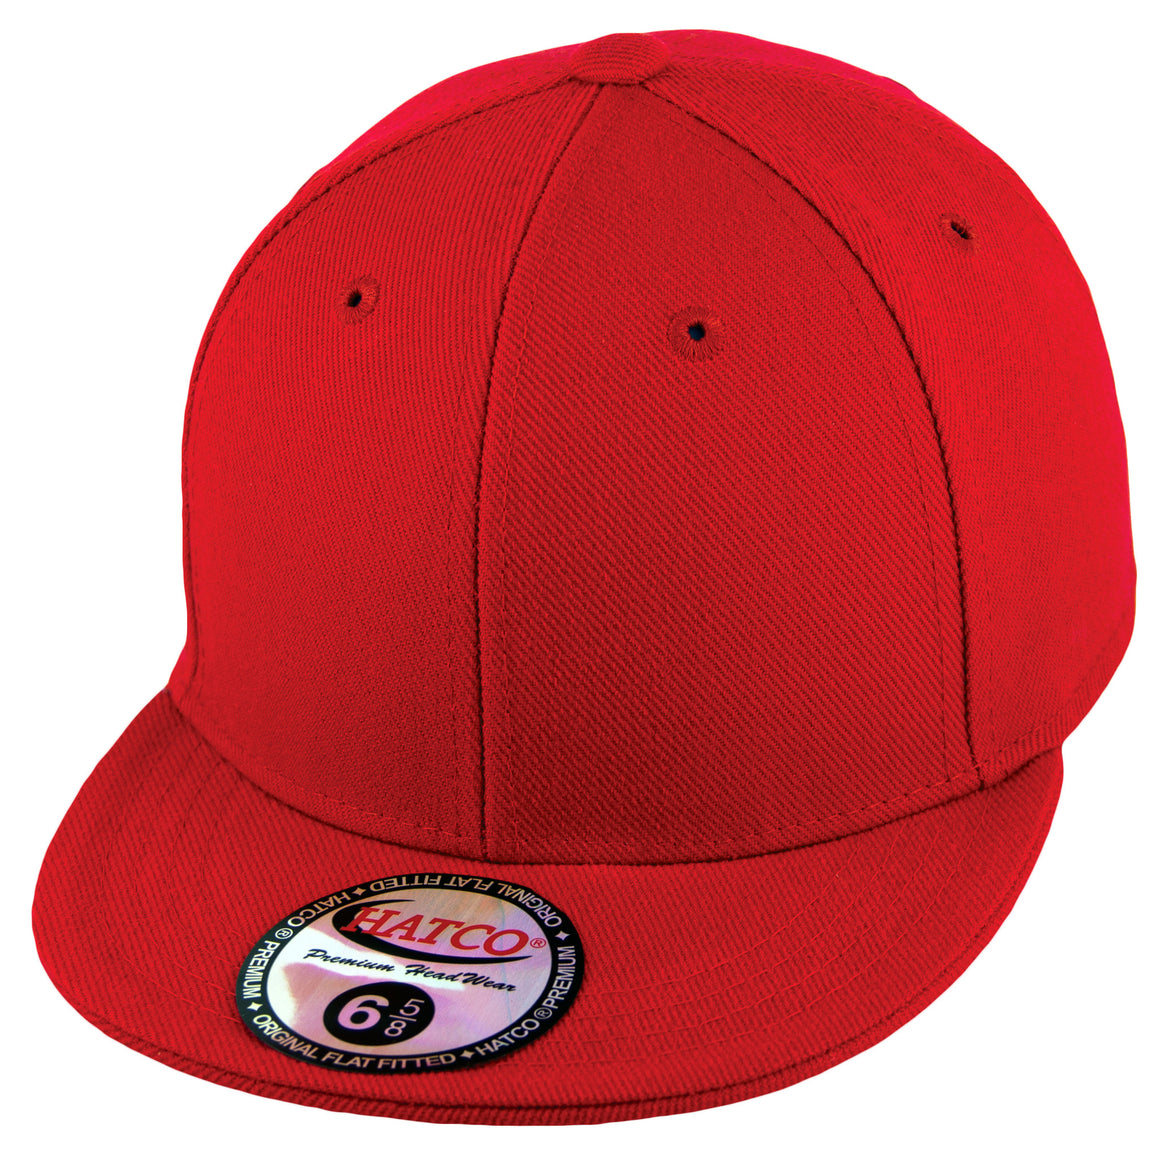 Blank Flat Fitted Cap - Kids - Red - HATCOcaps.com